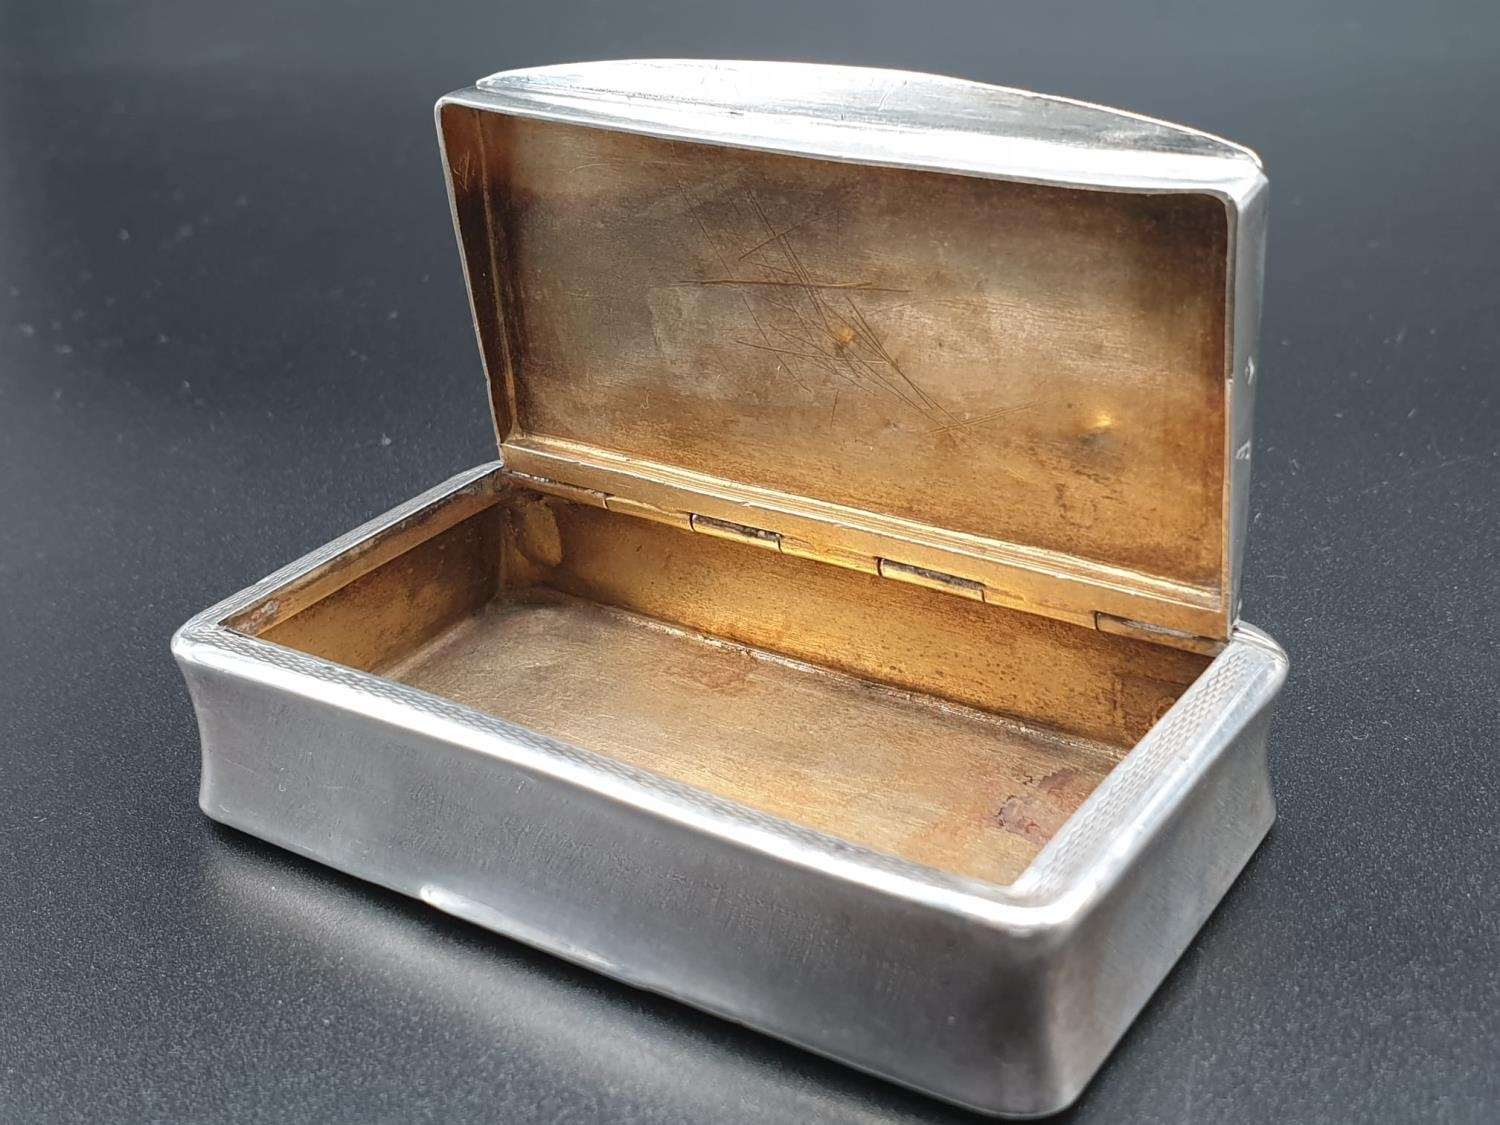 Antique French Gilt Solid Silver 1880s Snuff Box. 7.8cm x 4.5. 54.5g - Image 5 of 9